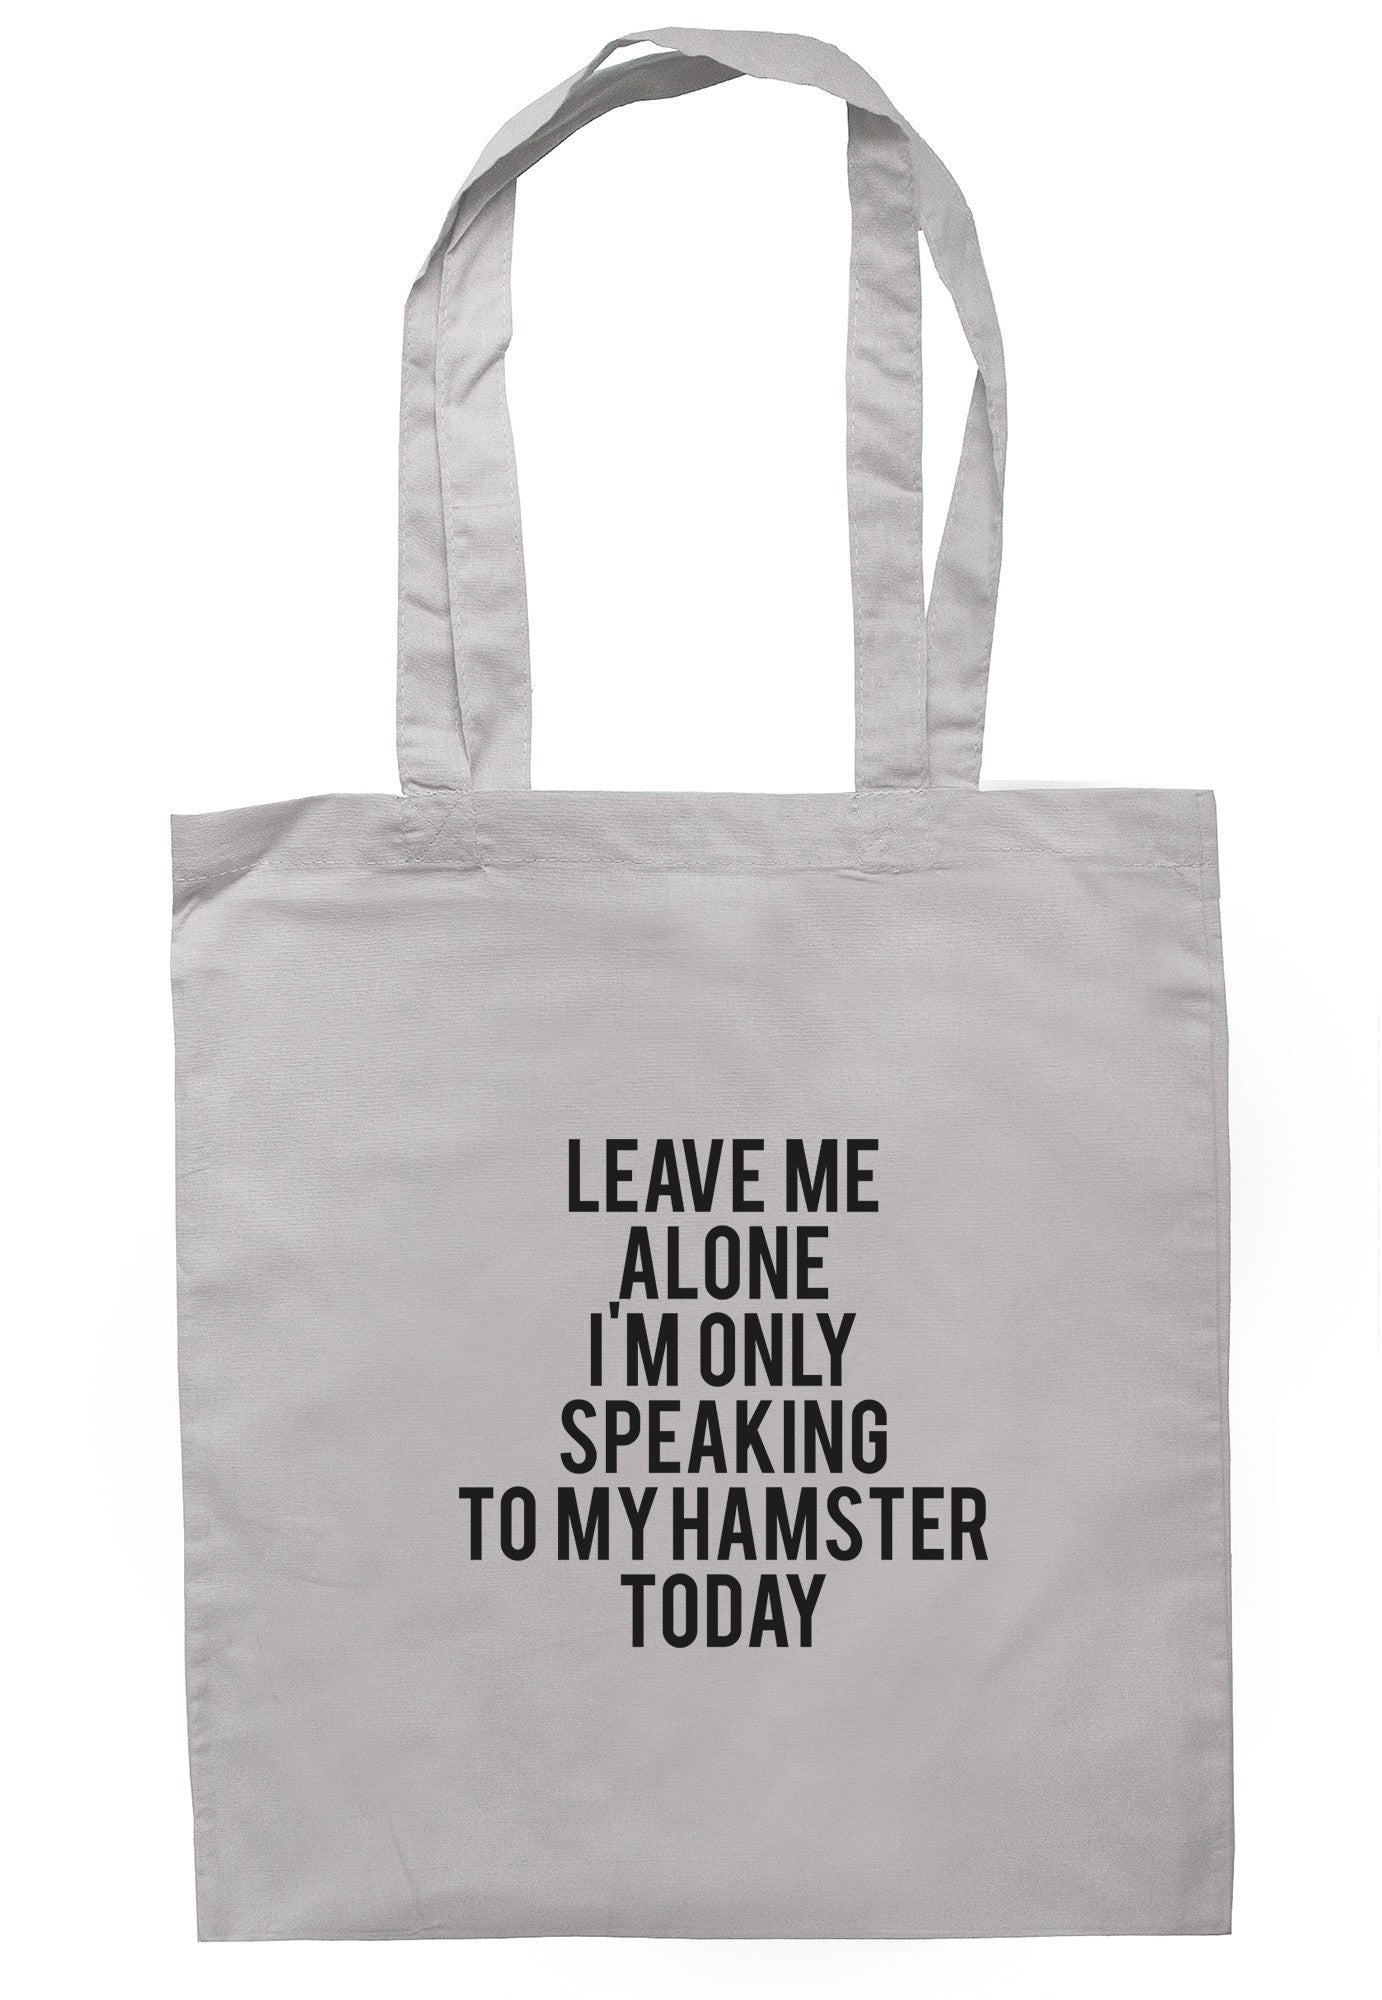 Leave Me Alone I'm Only Speaking To My Hamster Today Tote Bag TB0747 - Illustrated Identity Ltd.